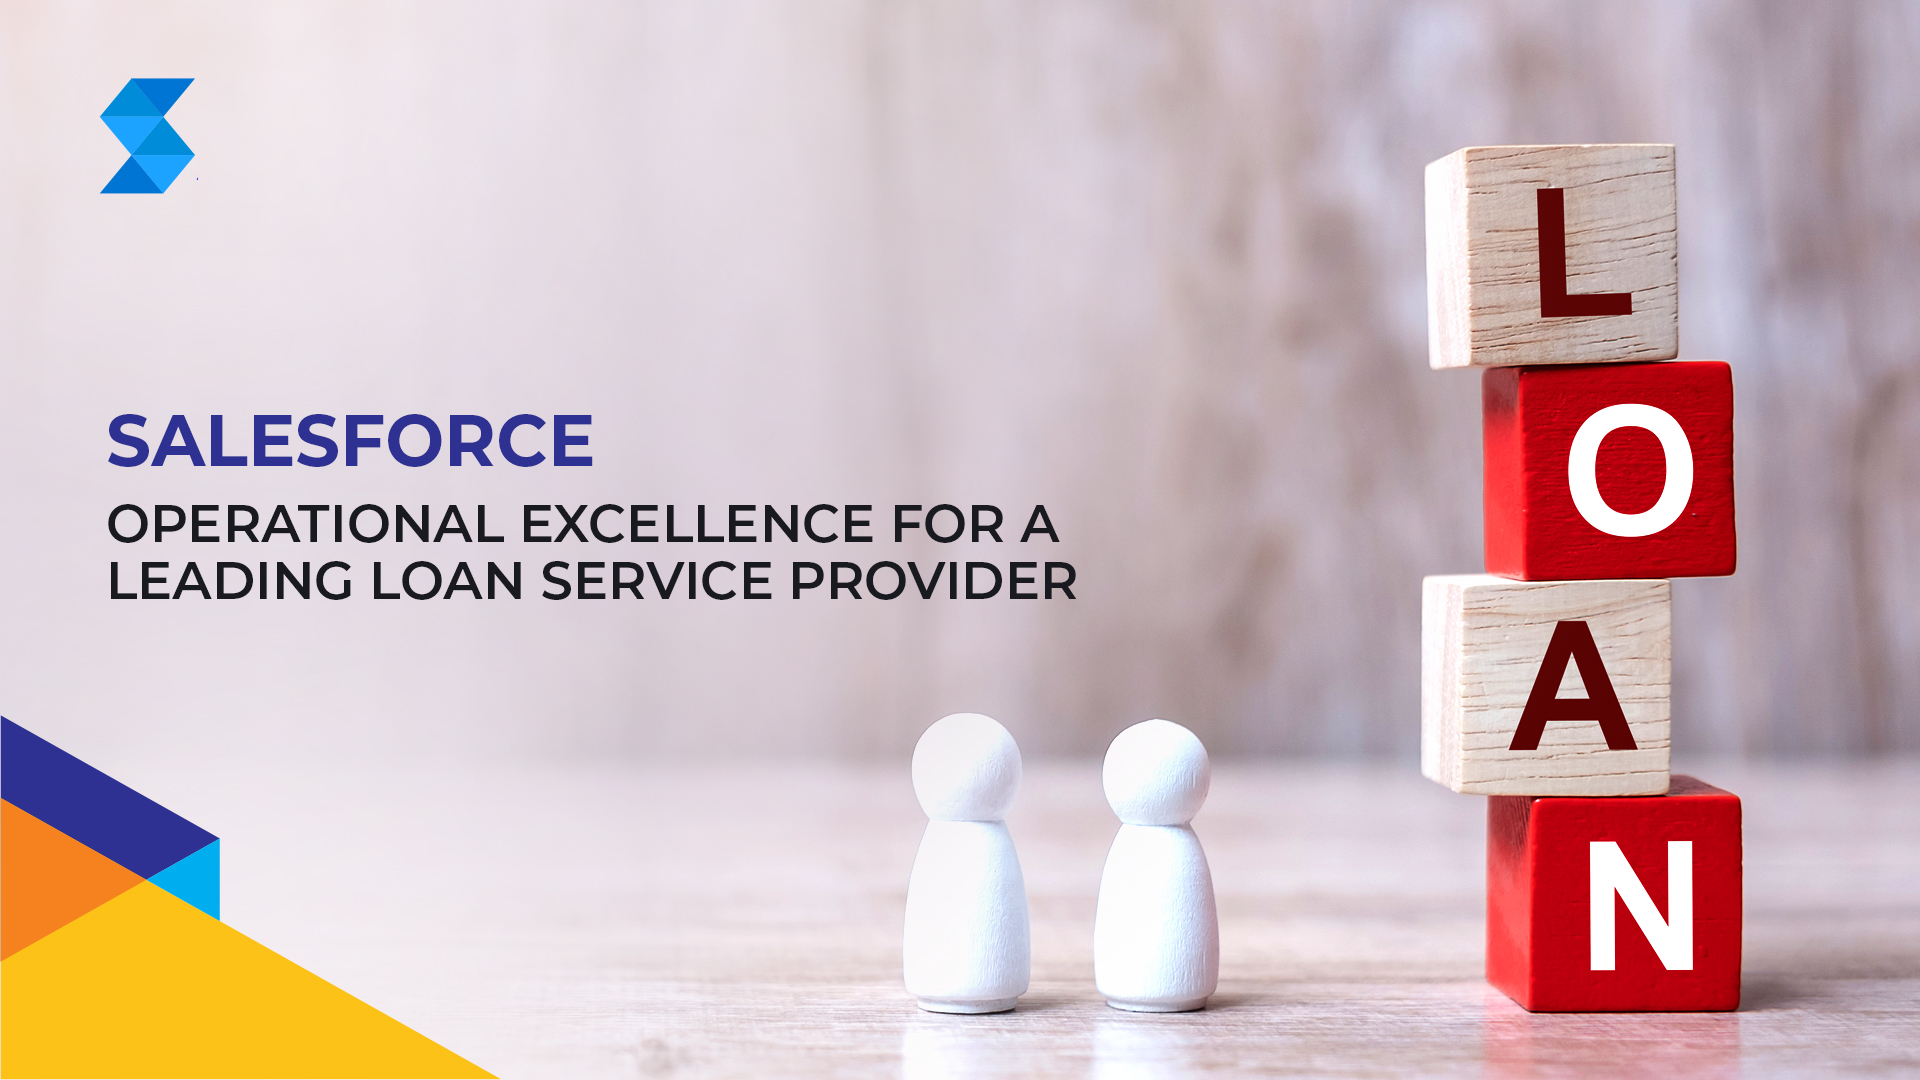 Salesforce Operational Excellence for a Leading Loan Service Provider